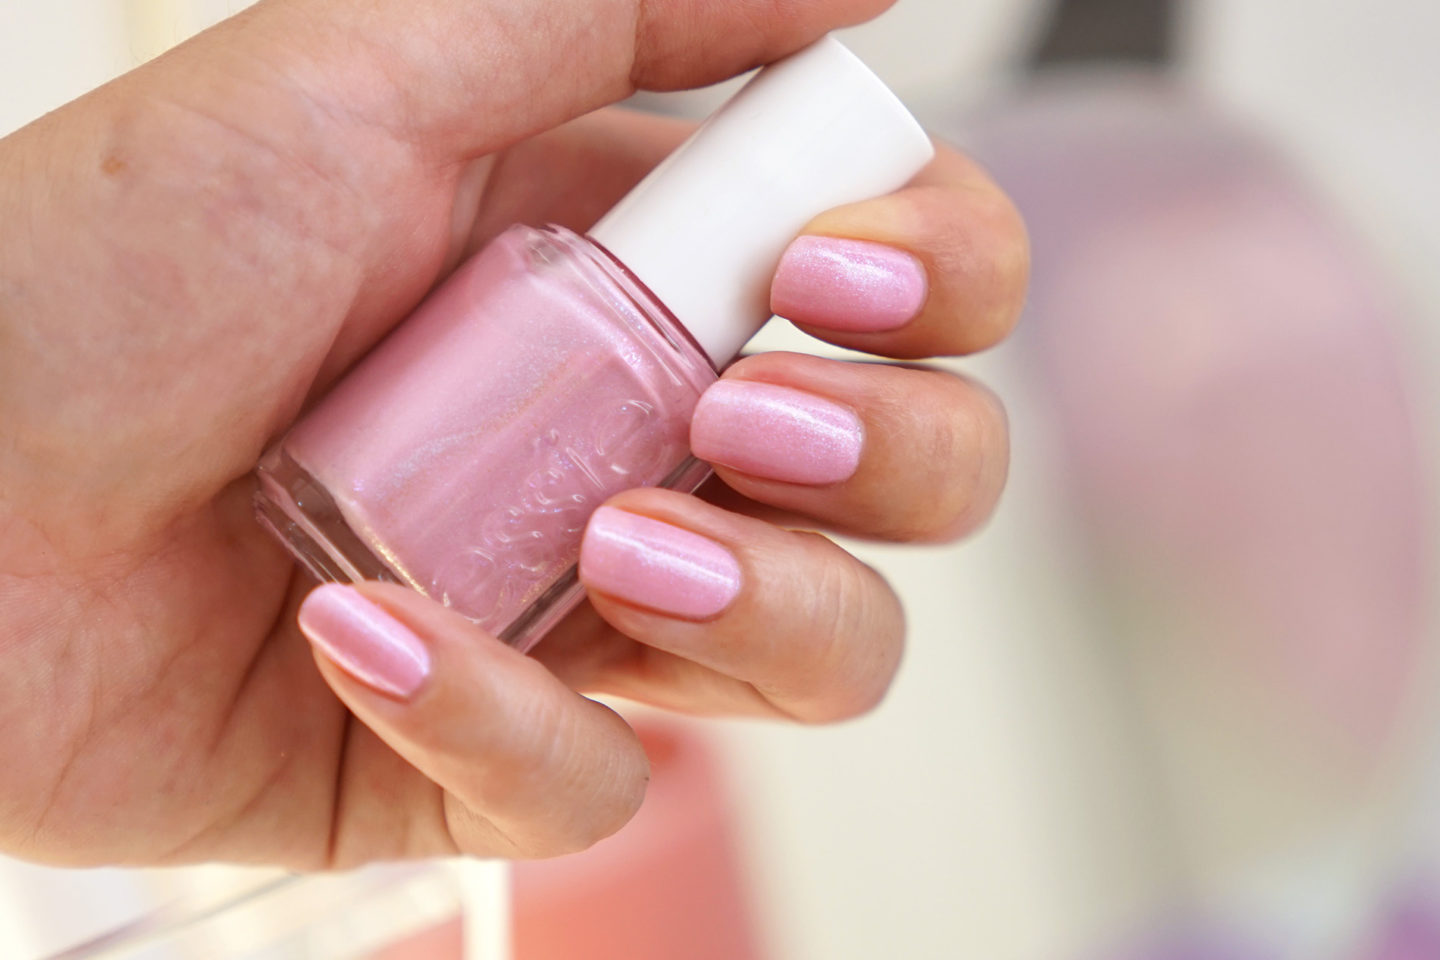 Essie Nail Polish Kissed by Mist